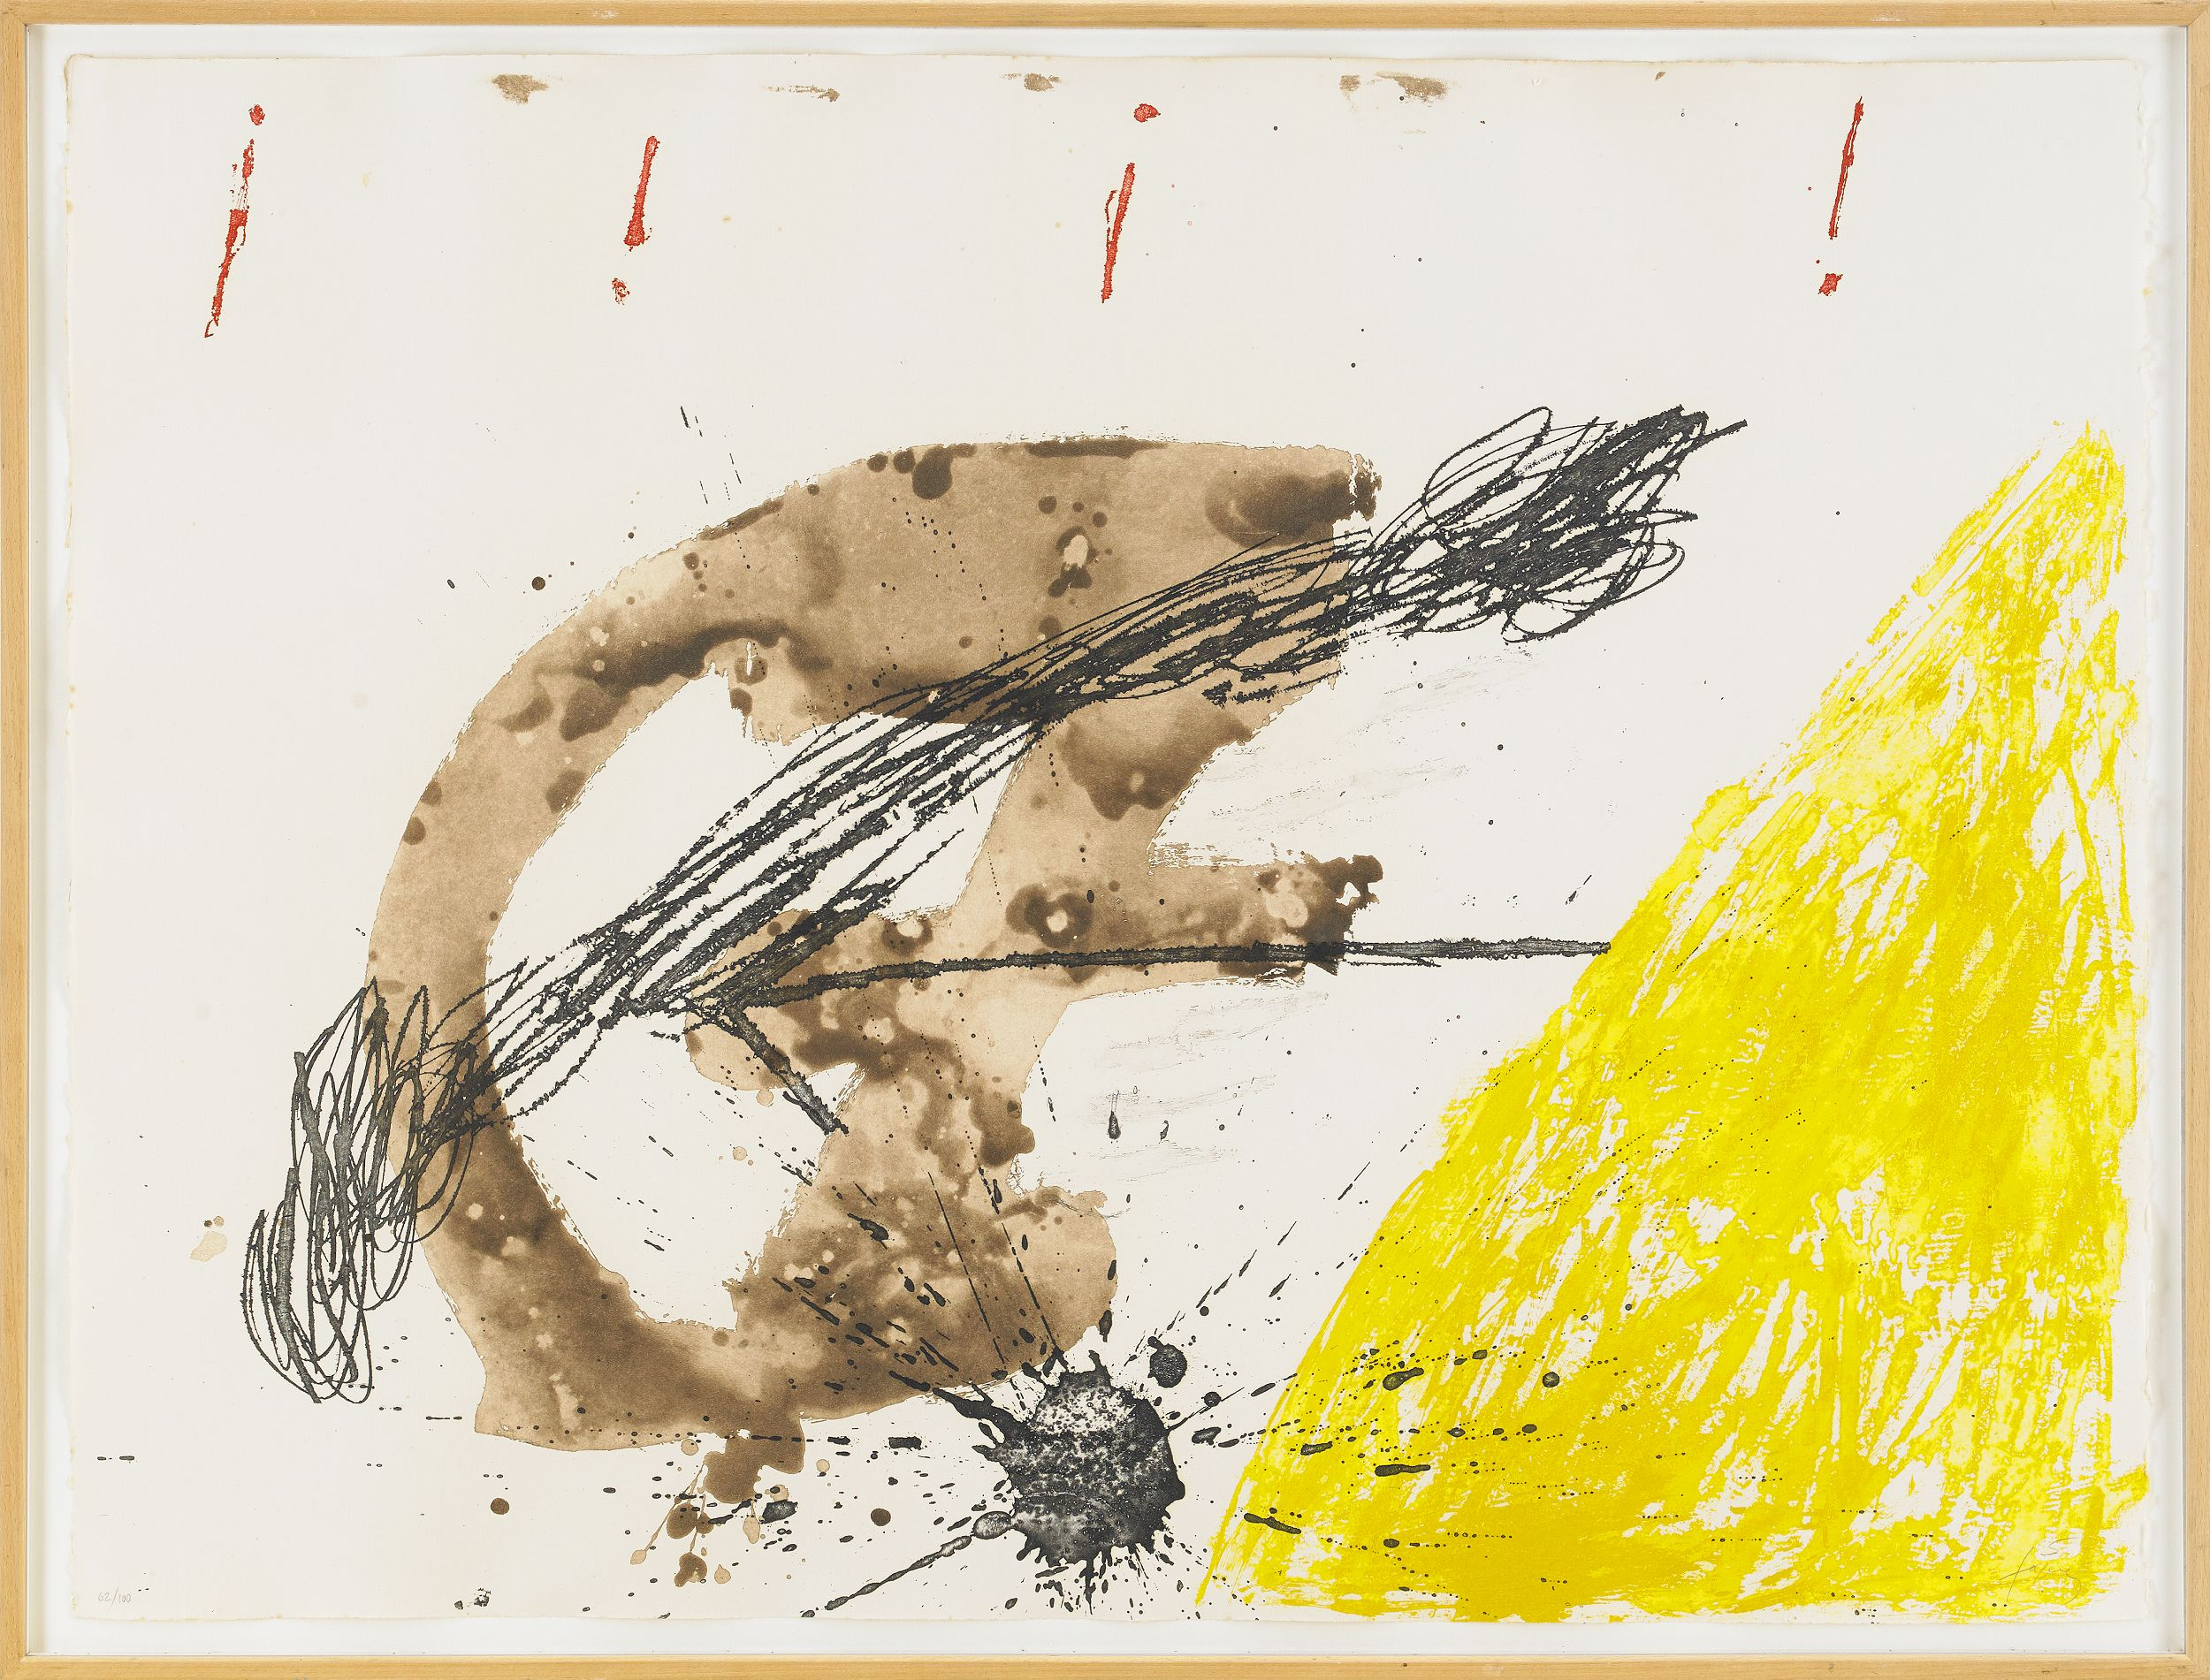 Antoni Tapies, Untitled